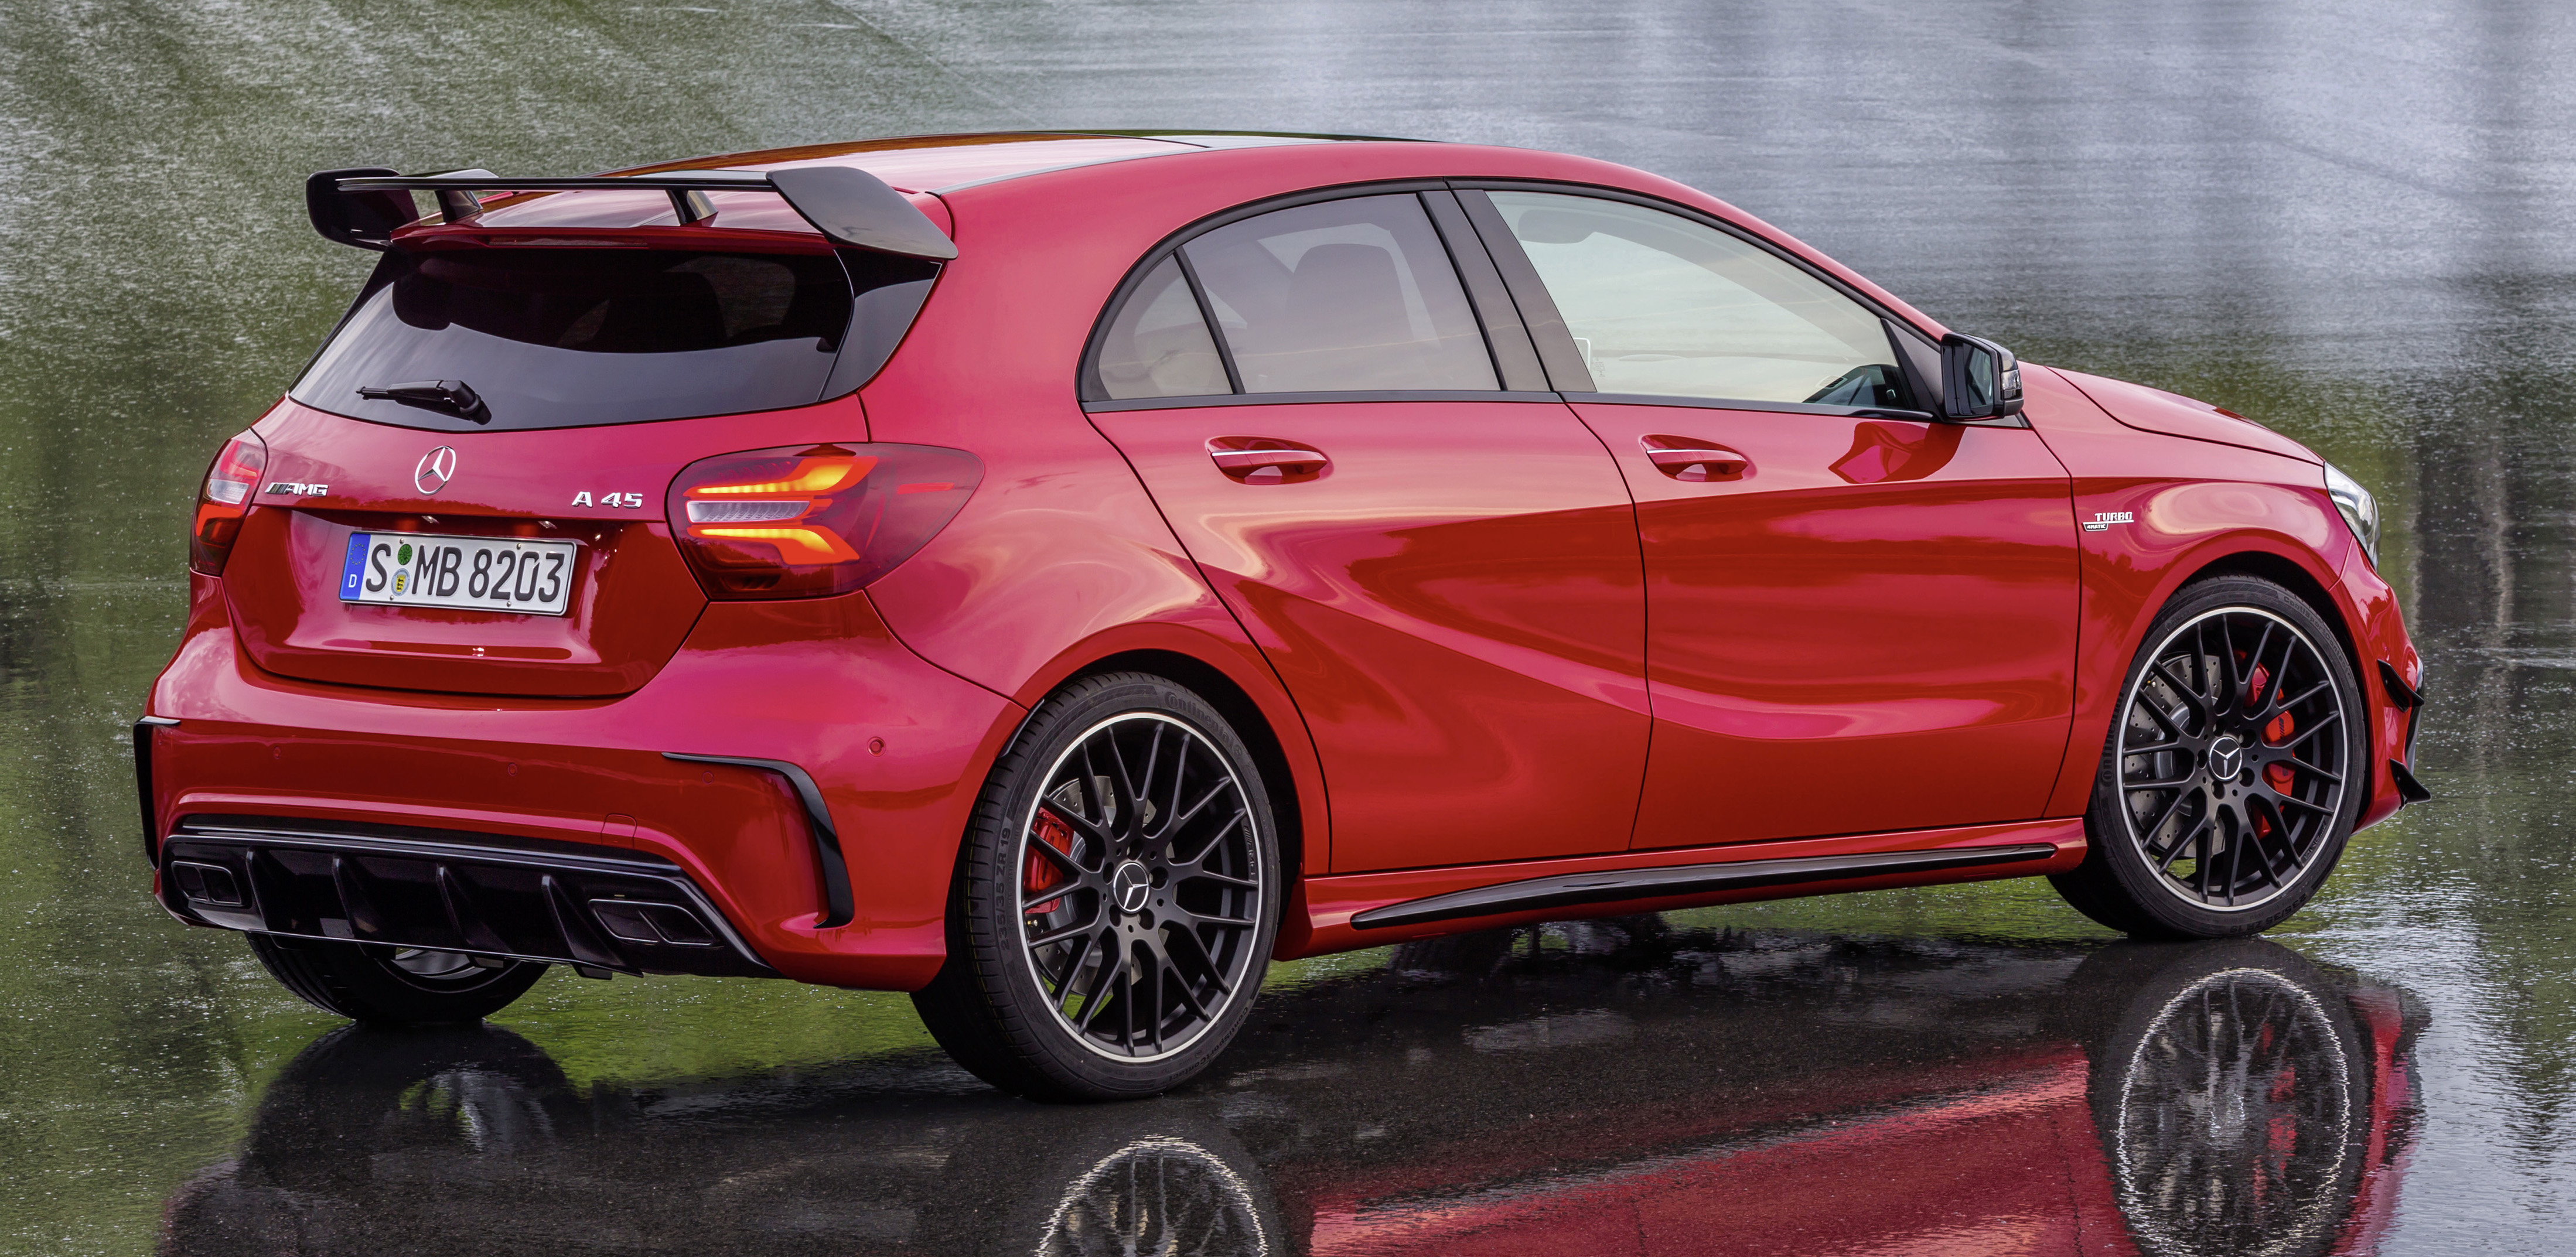 mercedes amg a 45 facelift gets 381 hp and 475 nm paul tan image 354937. Black Bedroom Furniture Sets. Home Design Ideas